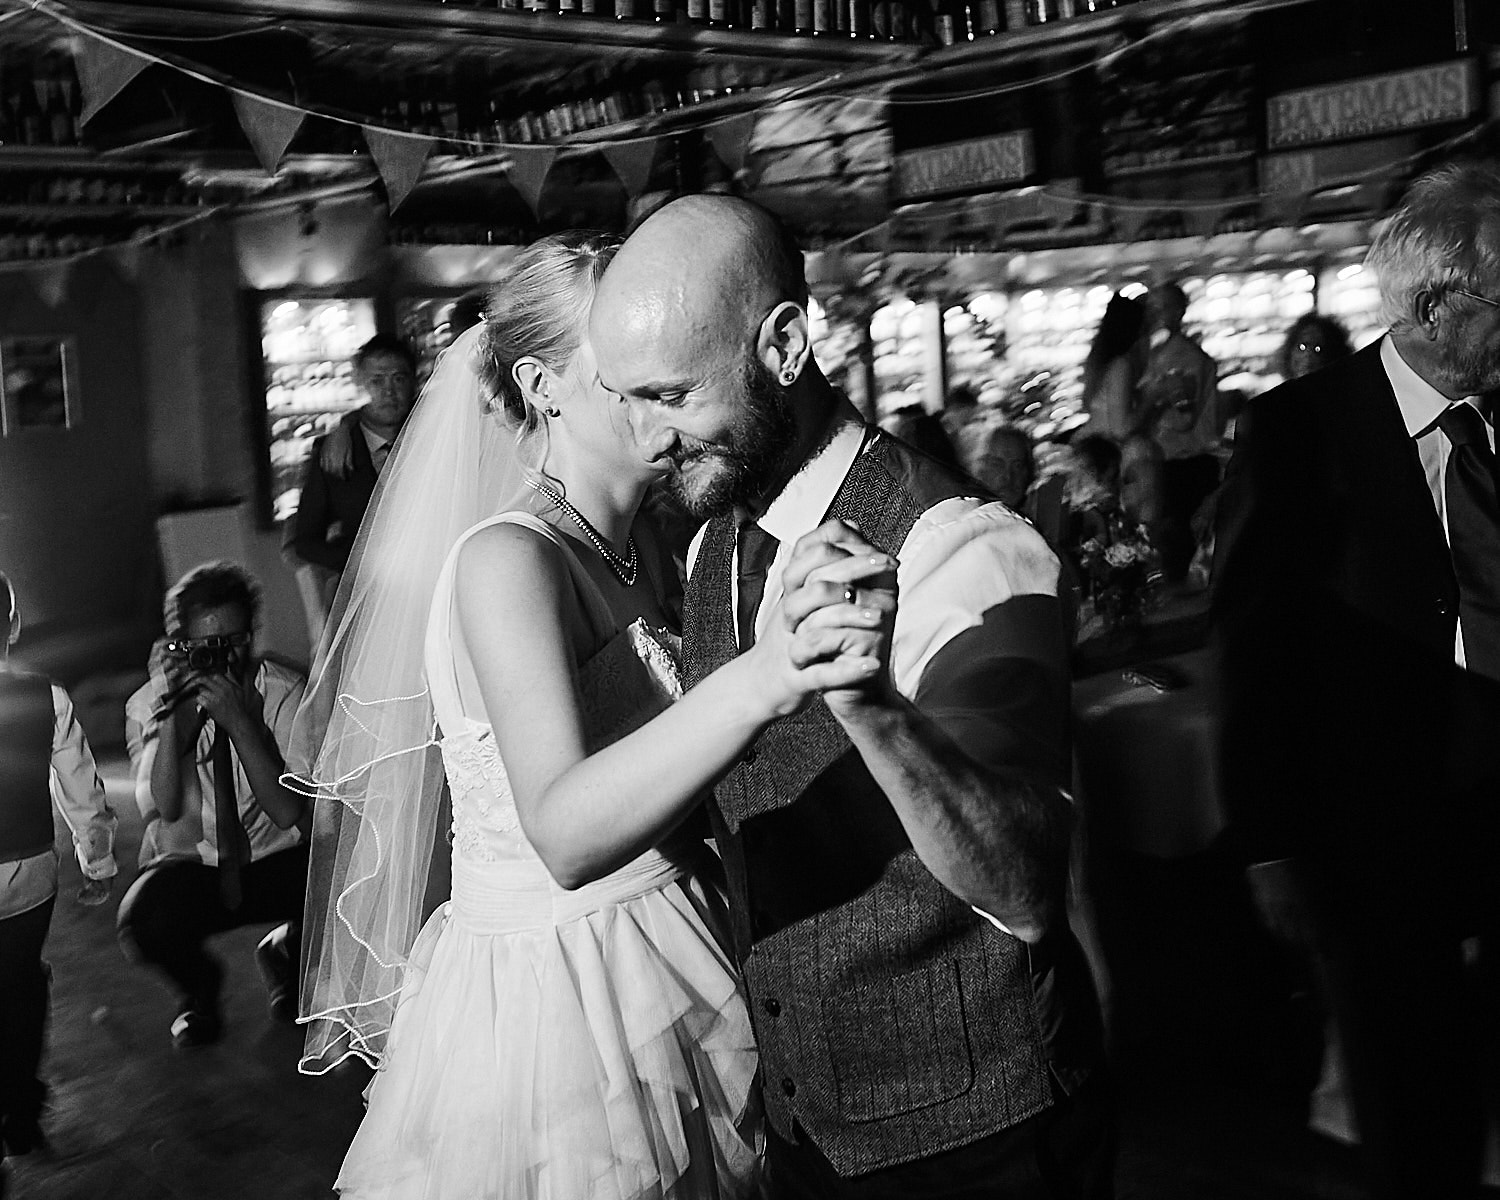 A couple share their first dance on their wedding day